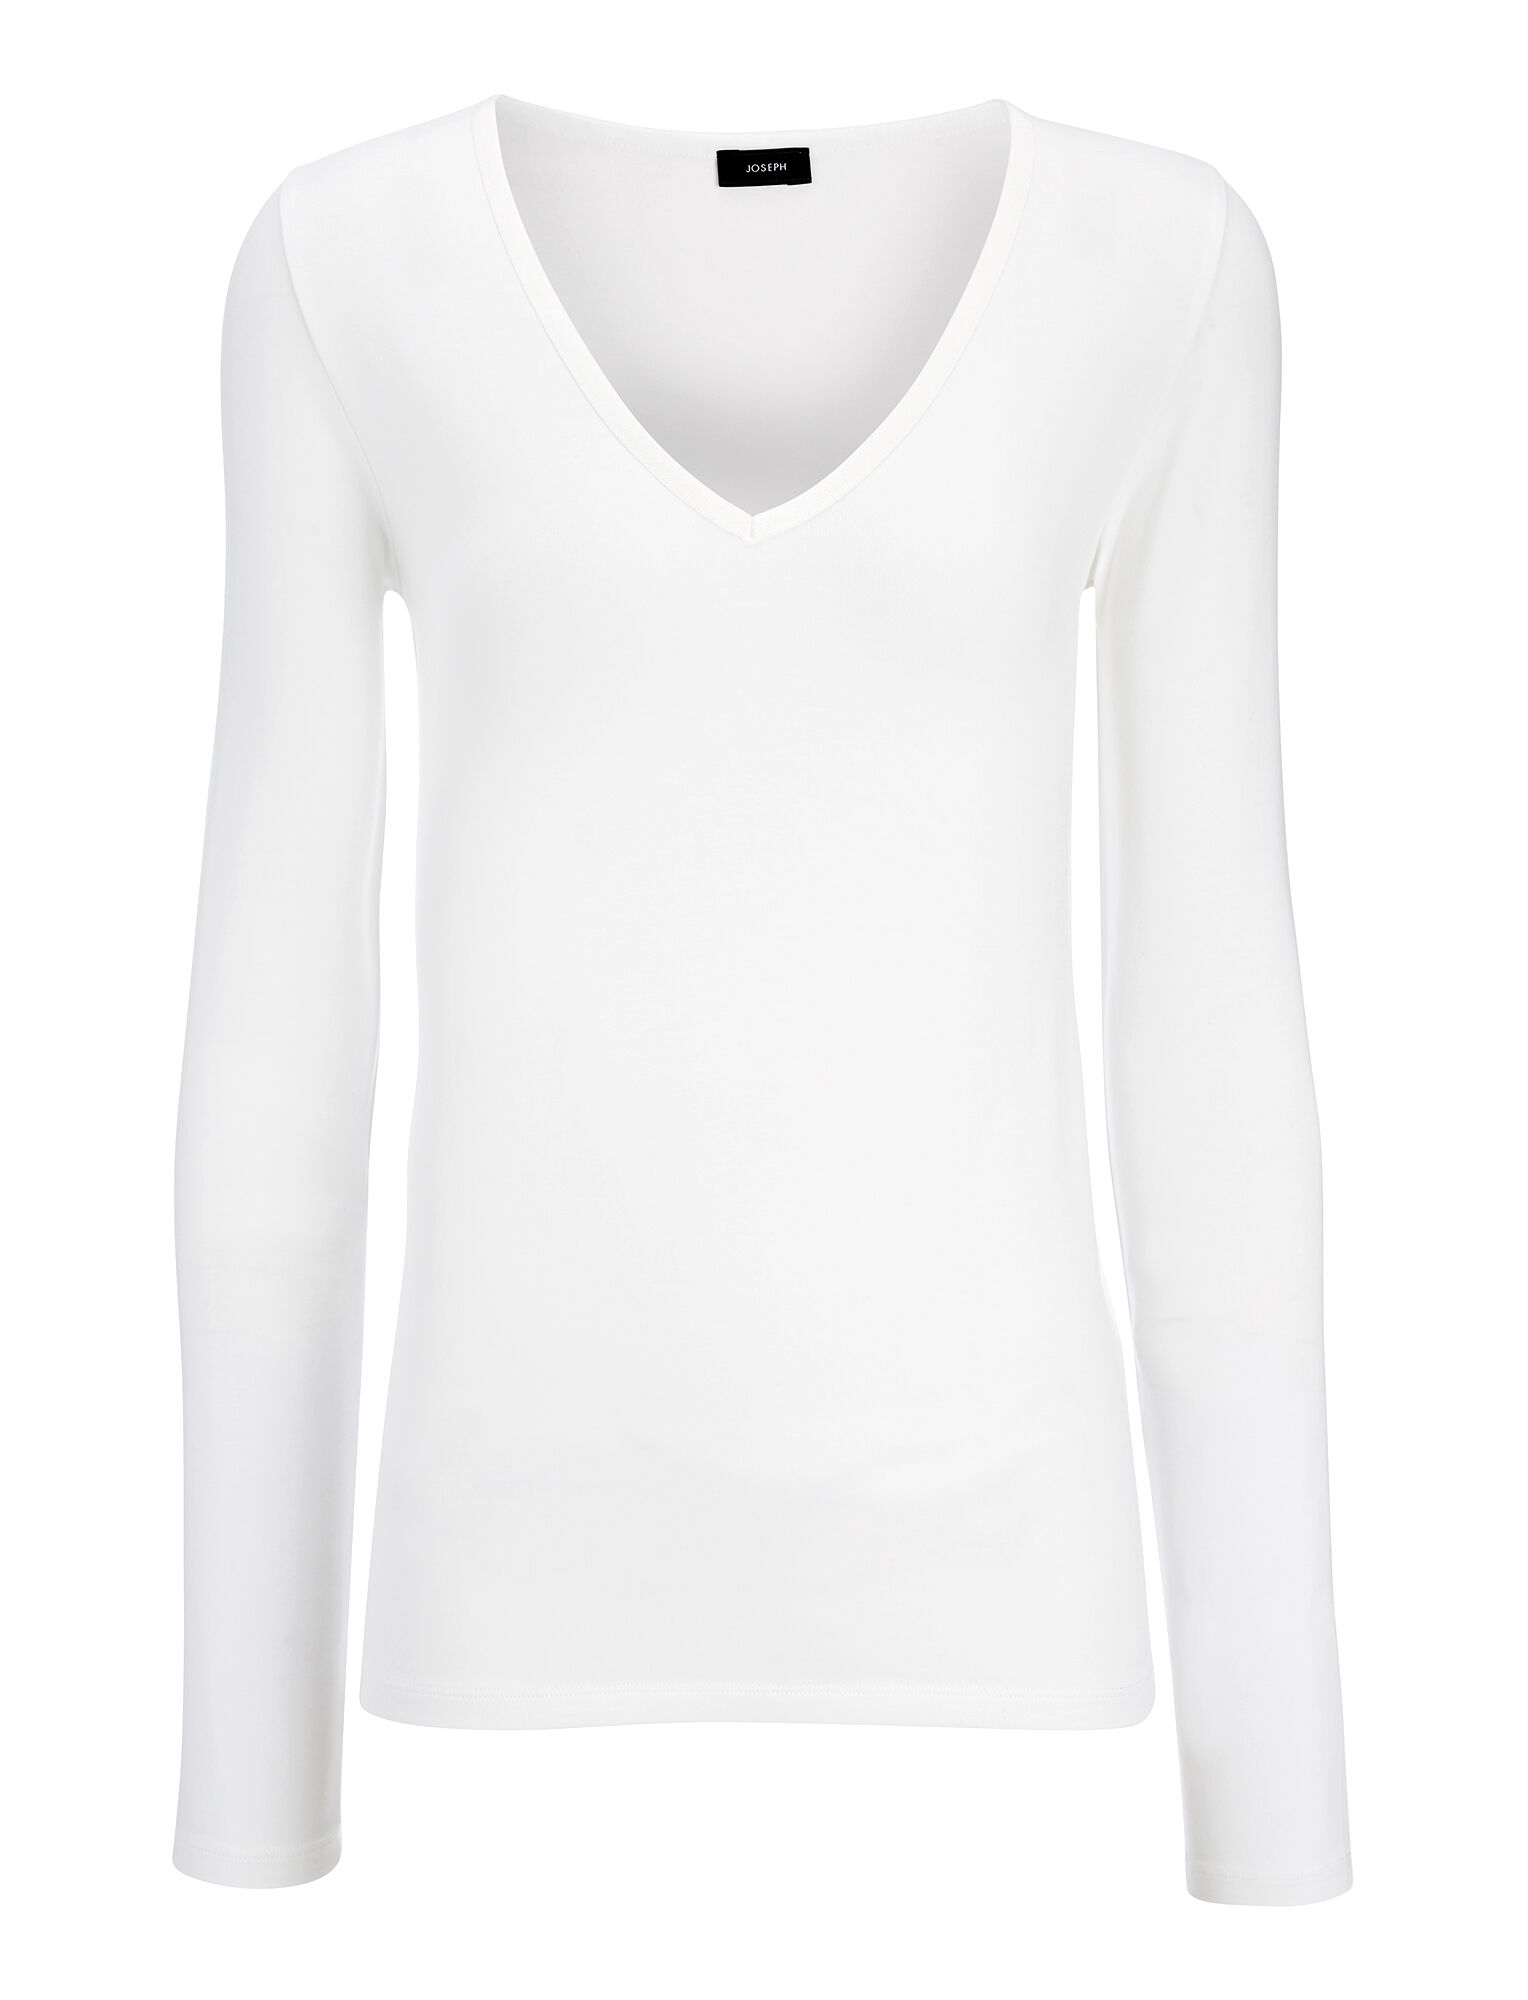 Joseph, Haut col V en coton et lyocell stretch, in OFF WHITE